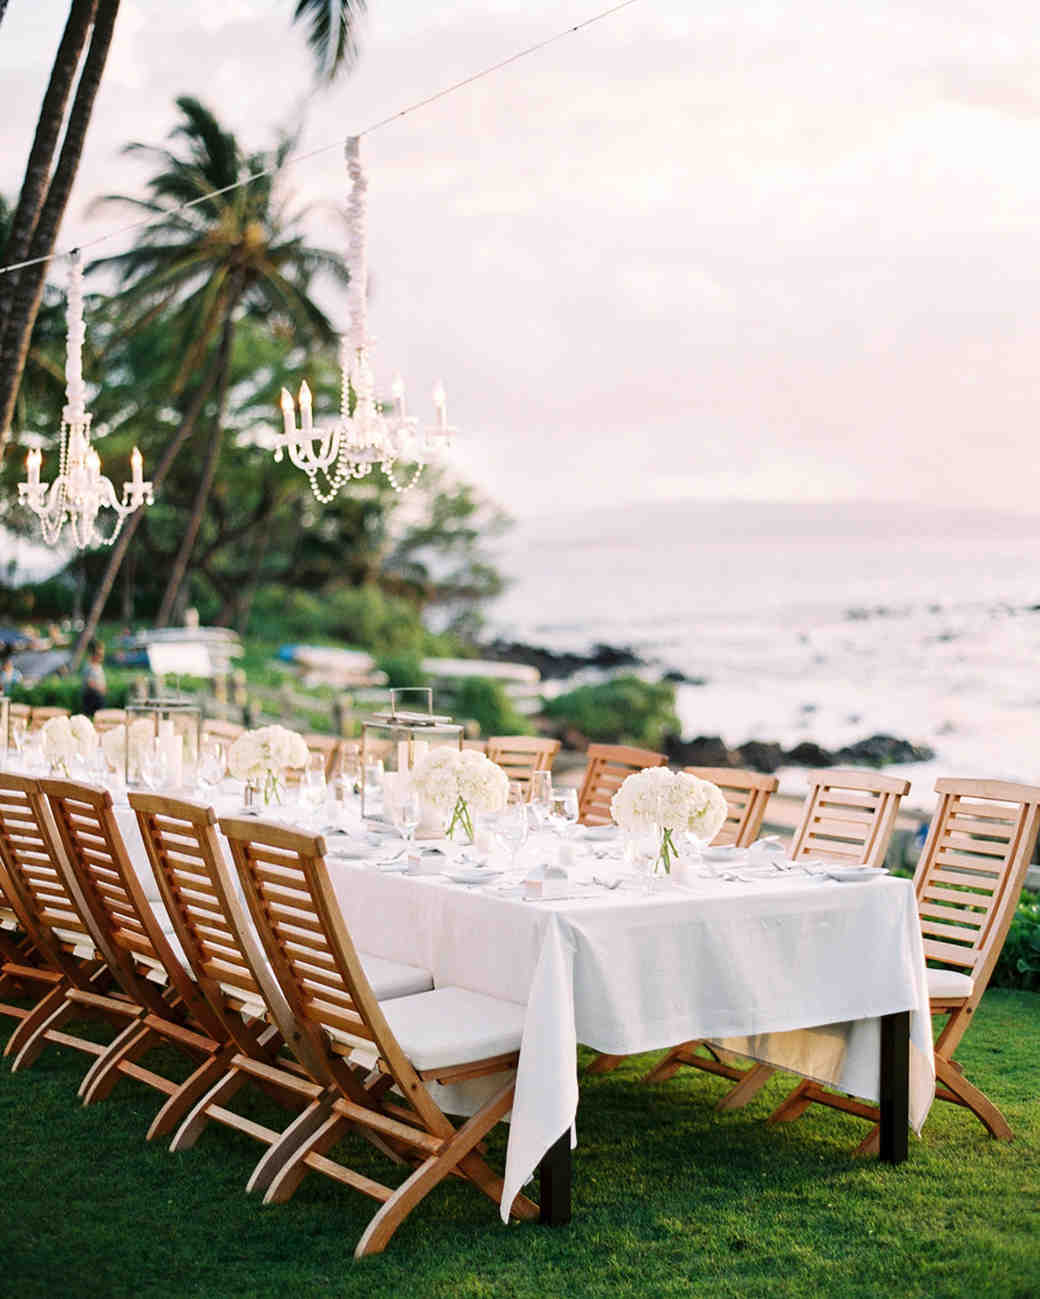 Beach Wedding Reception Ideas: 17 Beautiful Beach Wedding Venues